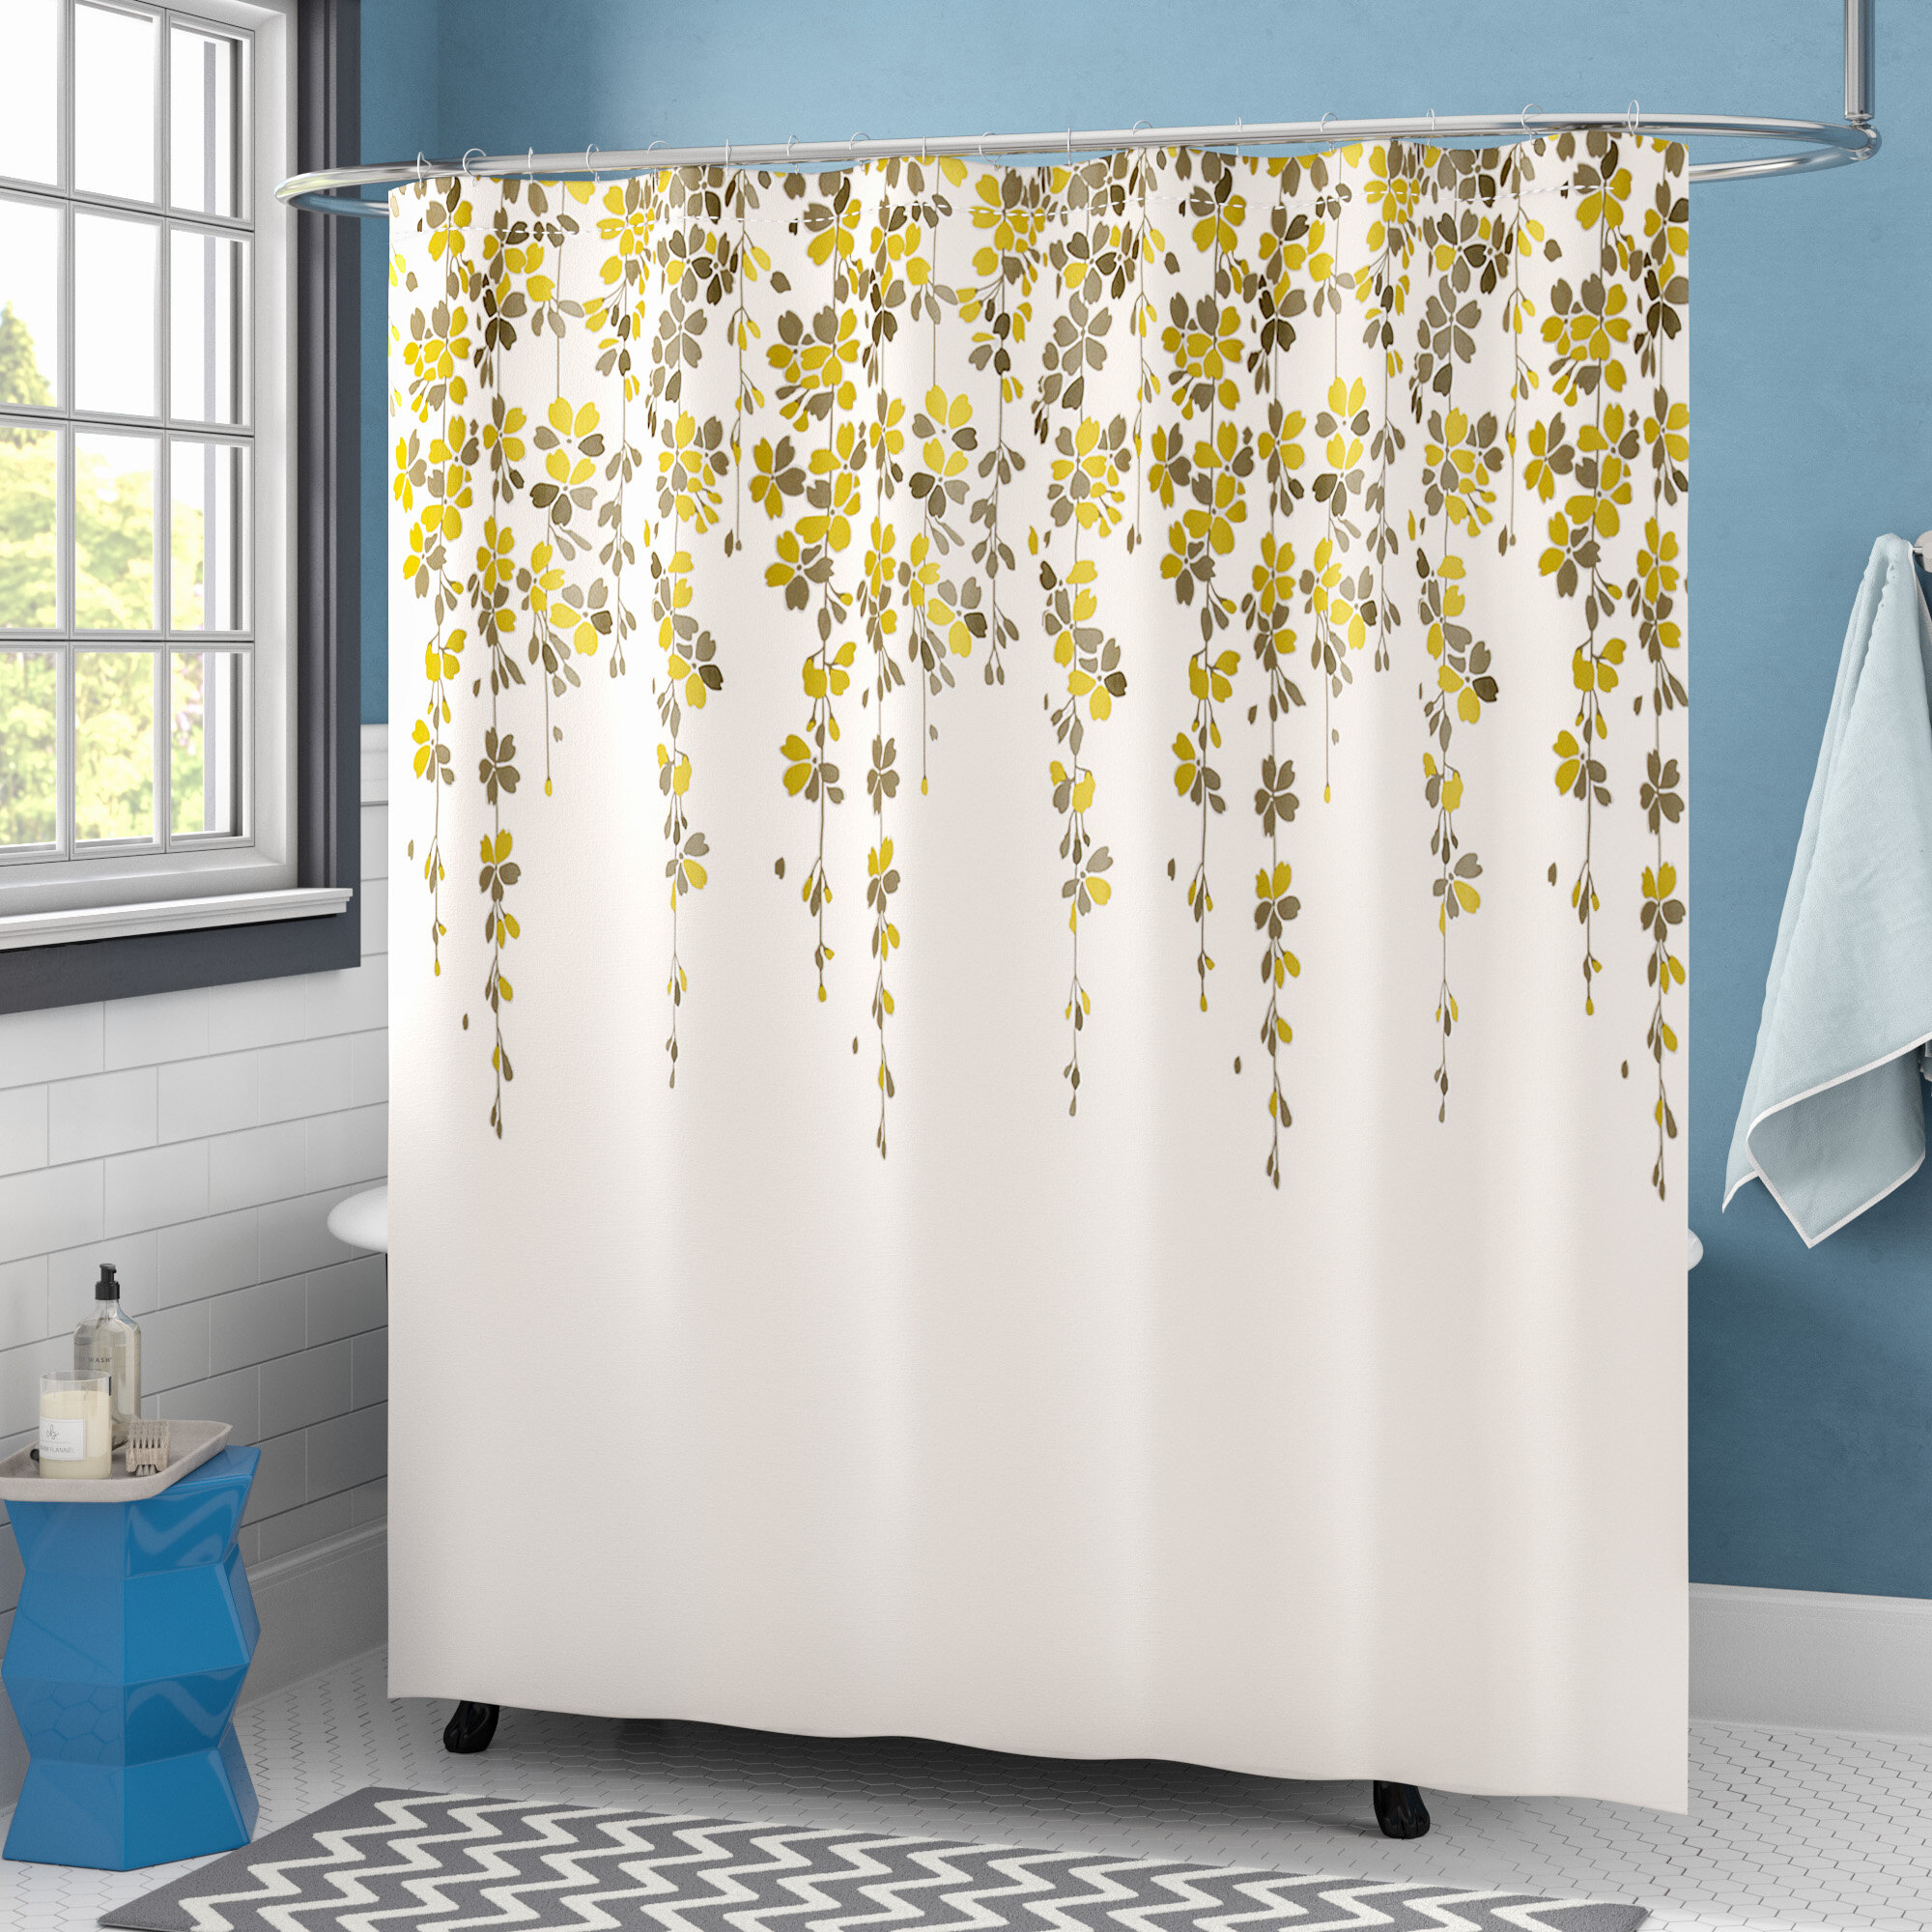 Shower Curtains Shower Liners You Ll Love In 2021 Wayfair